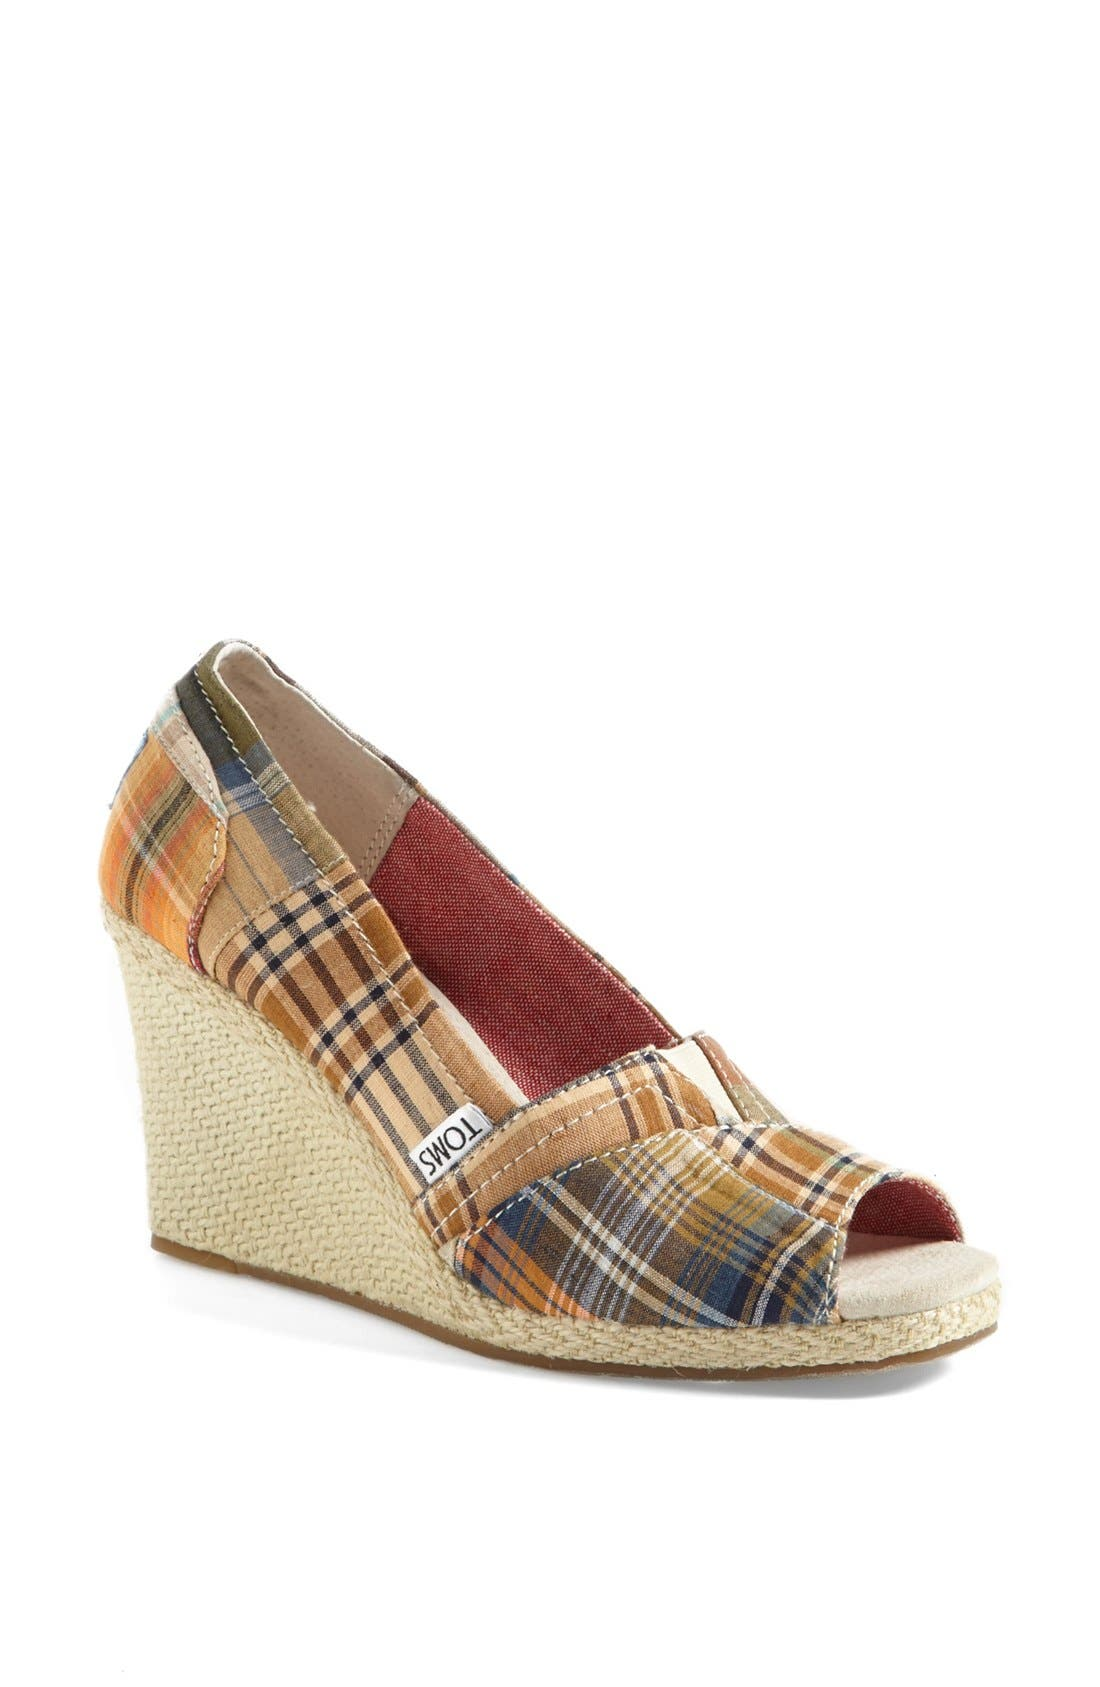 Alternate Image 1 Selected - TOMS 'Madras Plaid' Wedge (Women)